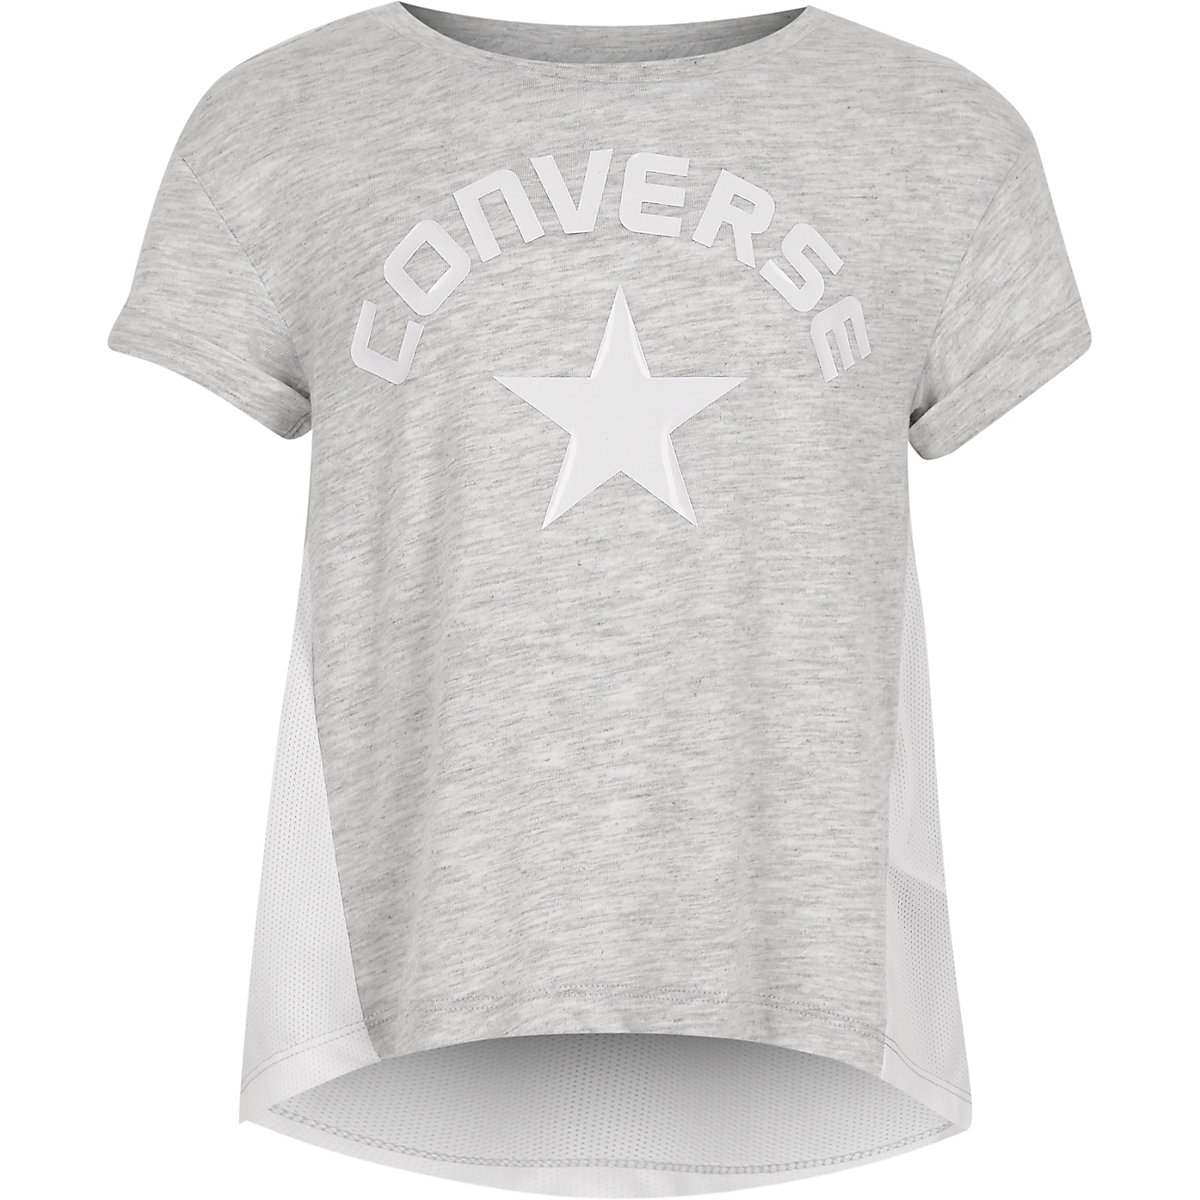 Girls Converse grey lunar rock T-shirt